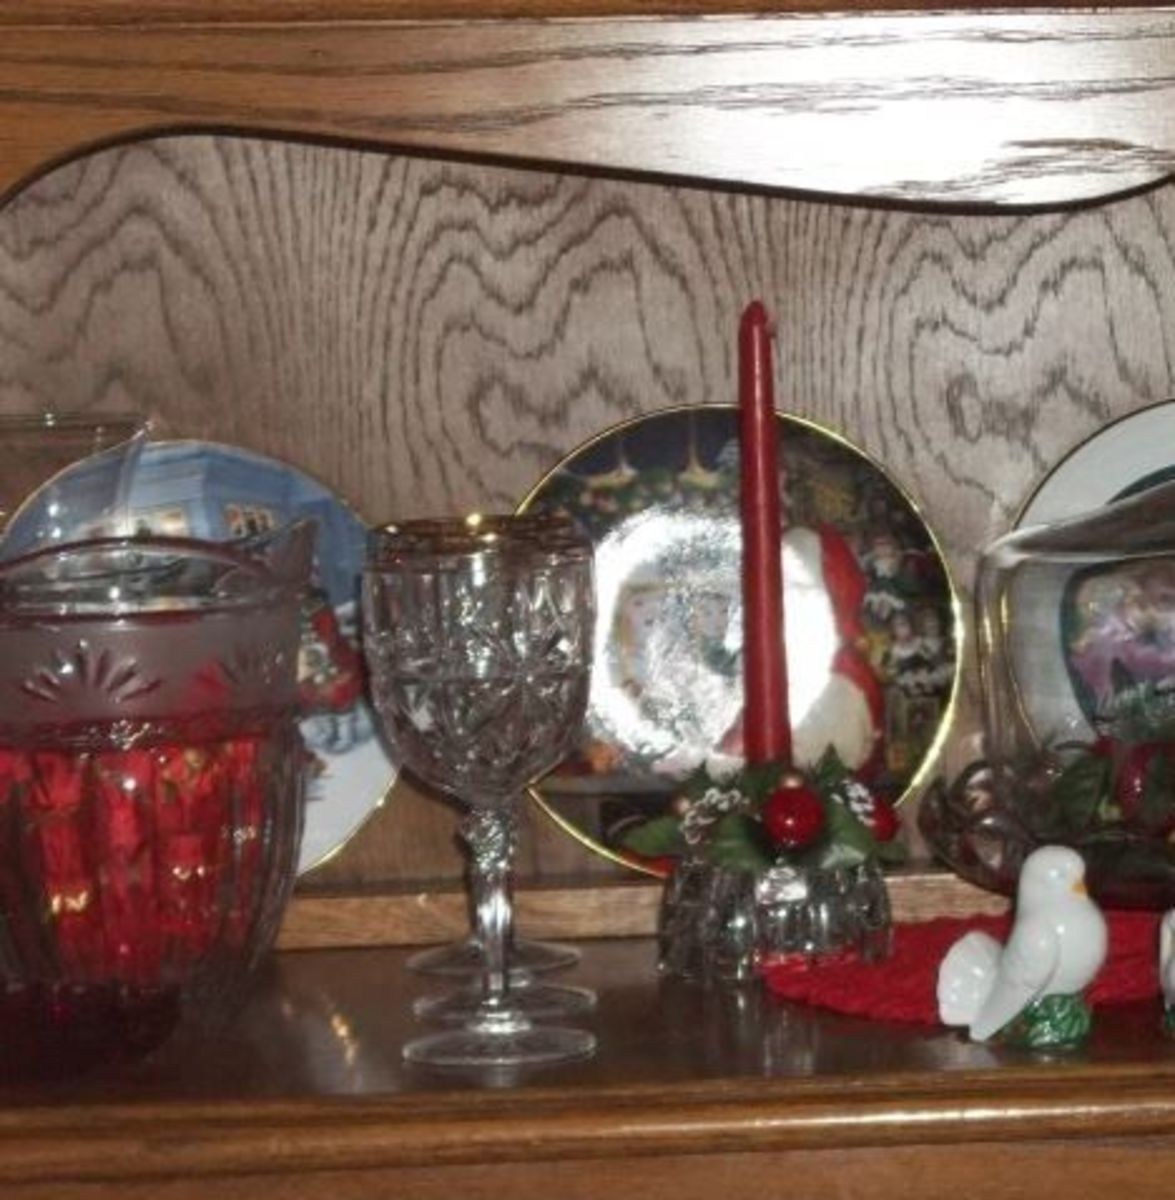 Colored balls in a crystal ice bucket and collector's Christmas plates make their own little Christmas scene.  The wood is highlighted by natural light.  A small puffed placemat does not overwhelm the space or take away from the attractive pieces.